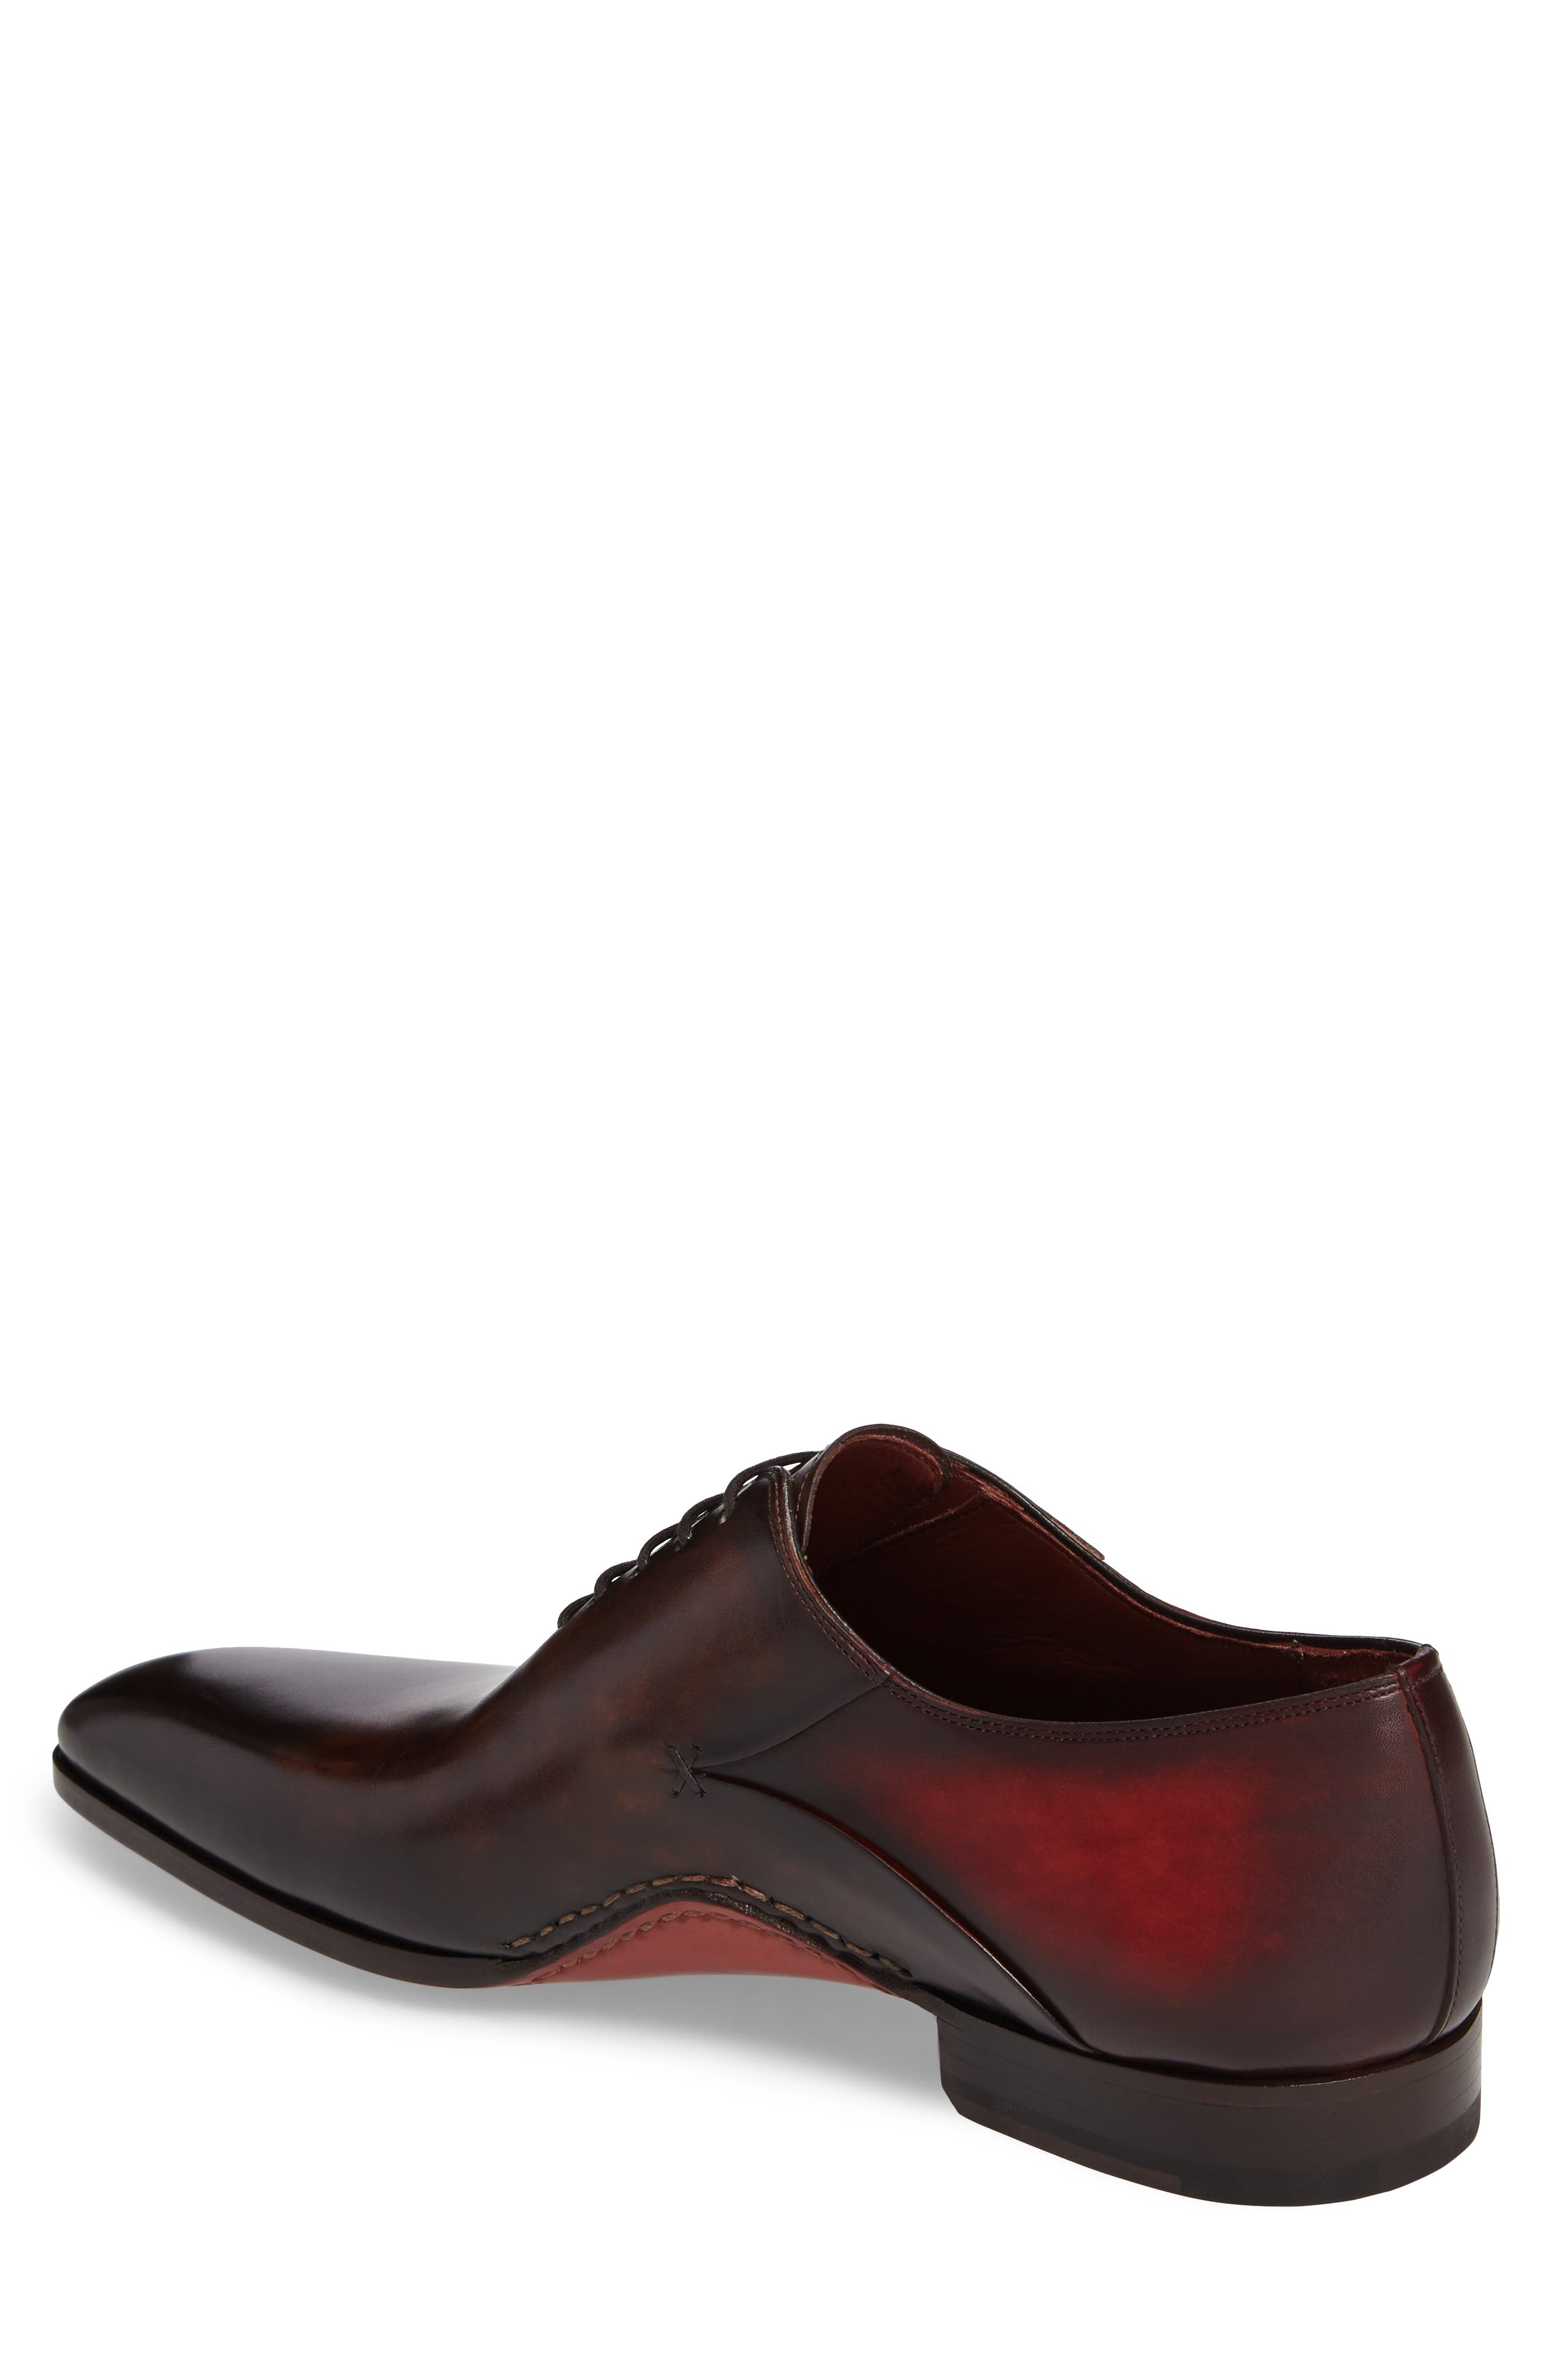 MAGNANNI, Cantabria Plain Toe Oxford, Alternate thumbnail 2, color, BROWN/ RED LEATHER